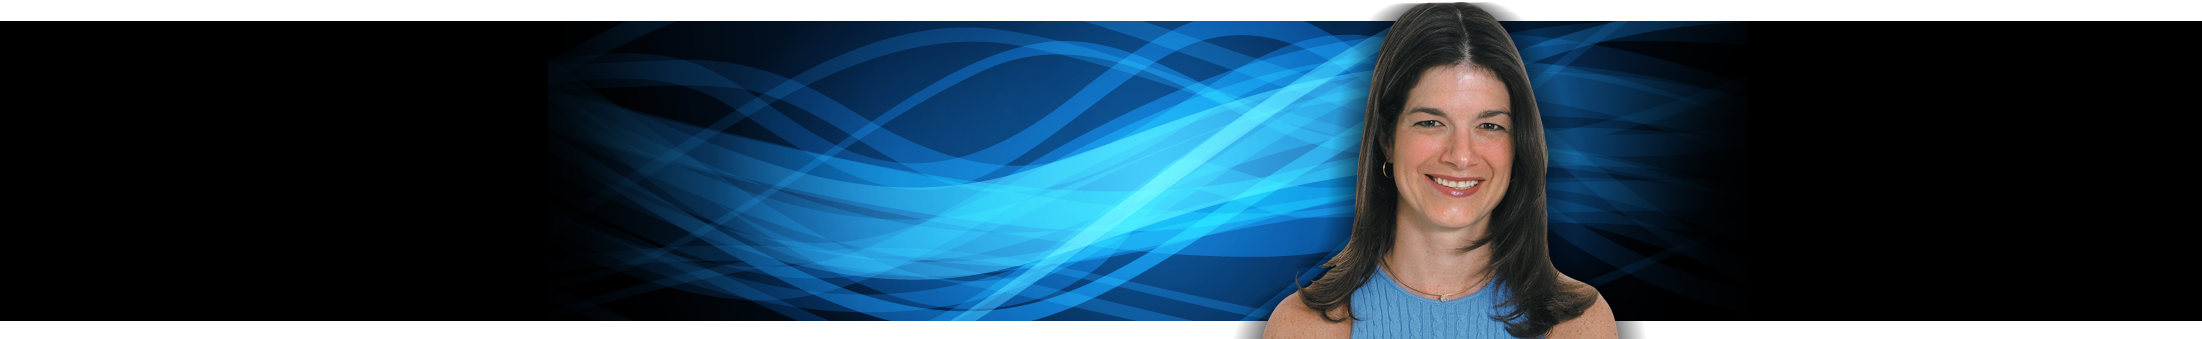 Dr. Jeannette M. Anderson of Anderson Peak Performance Chiropractic clinic - header image